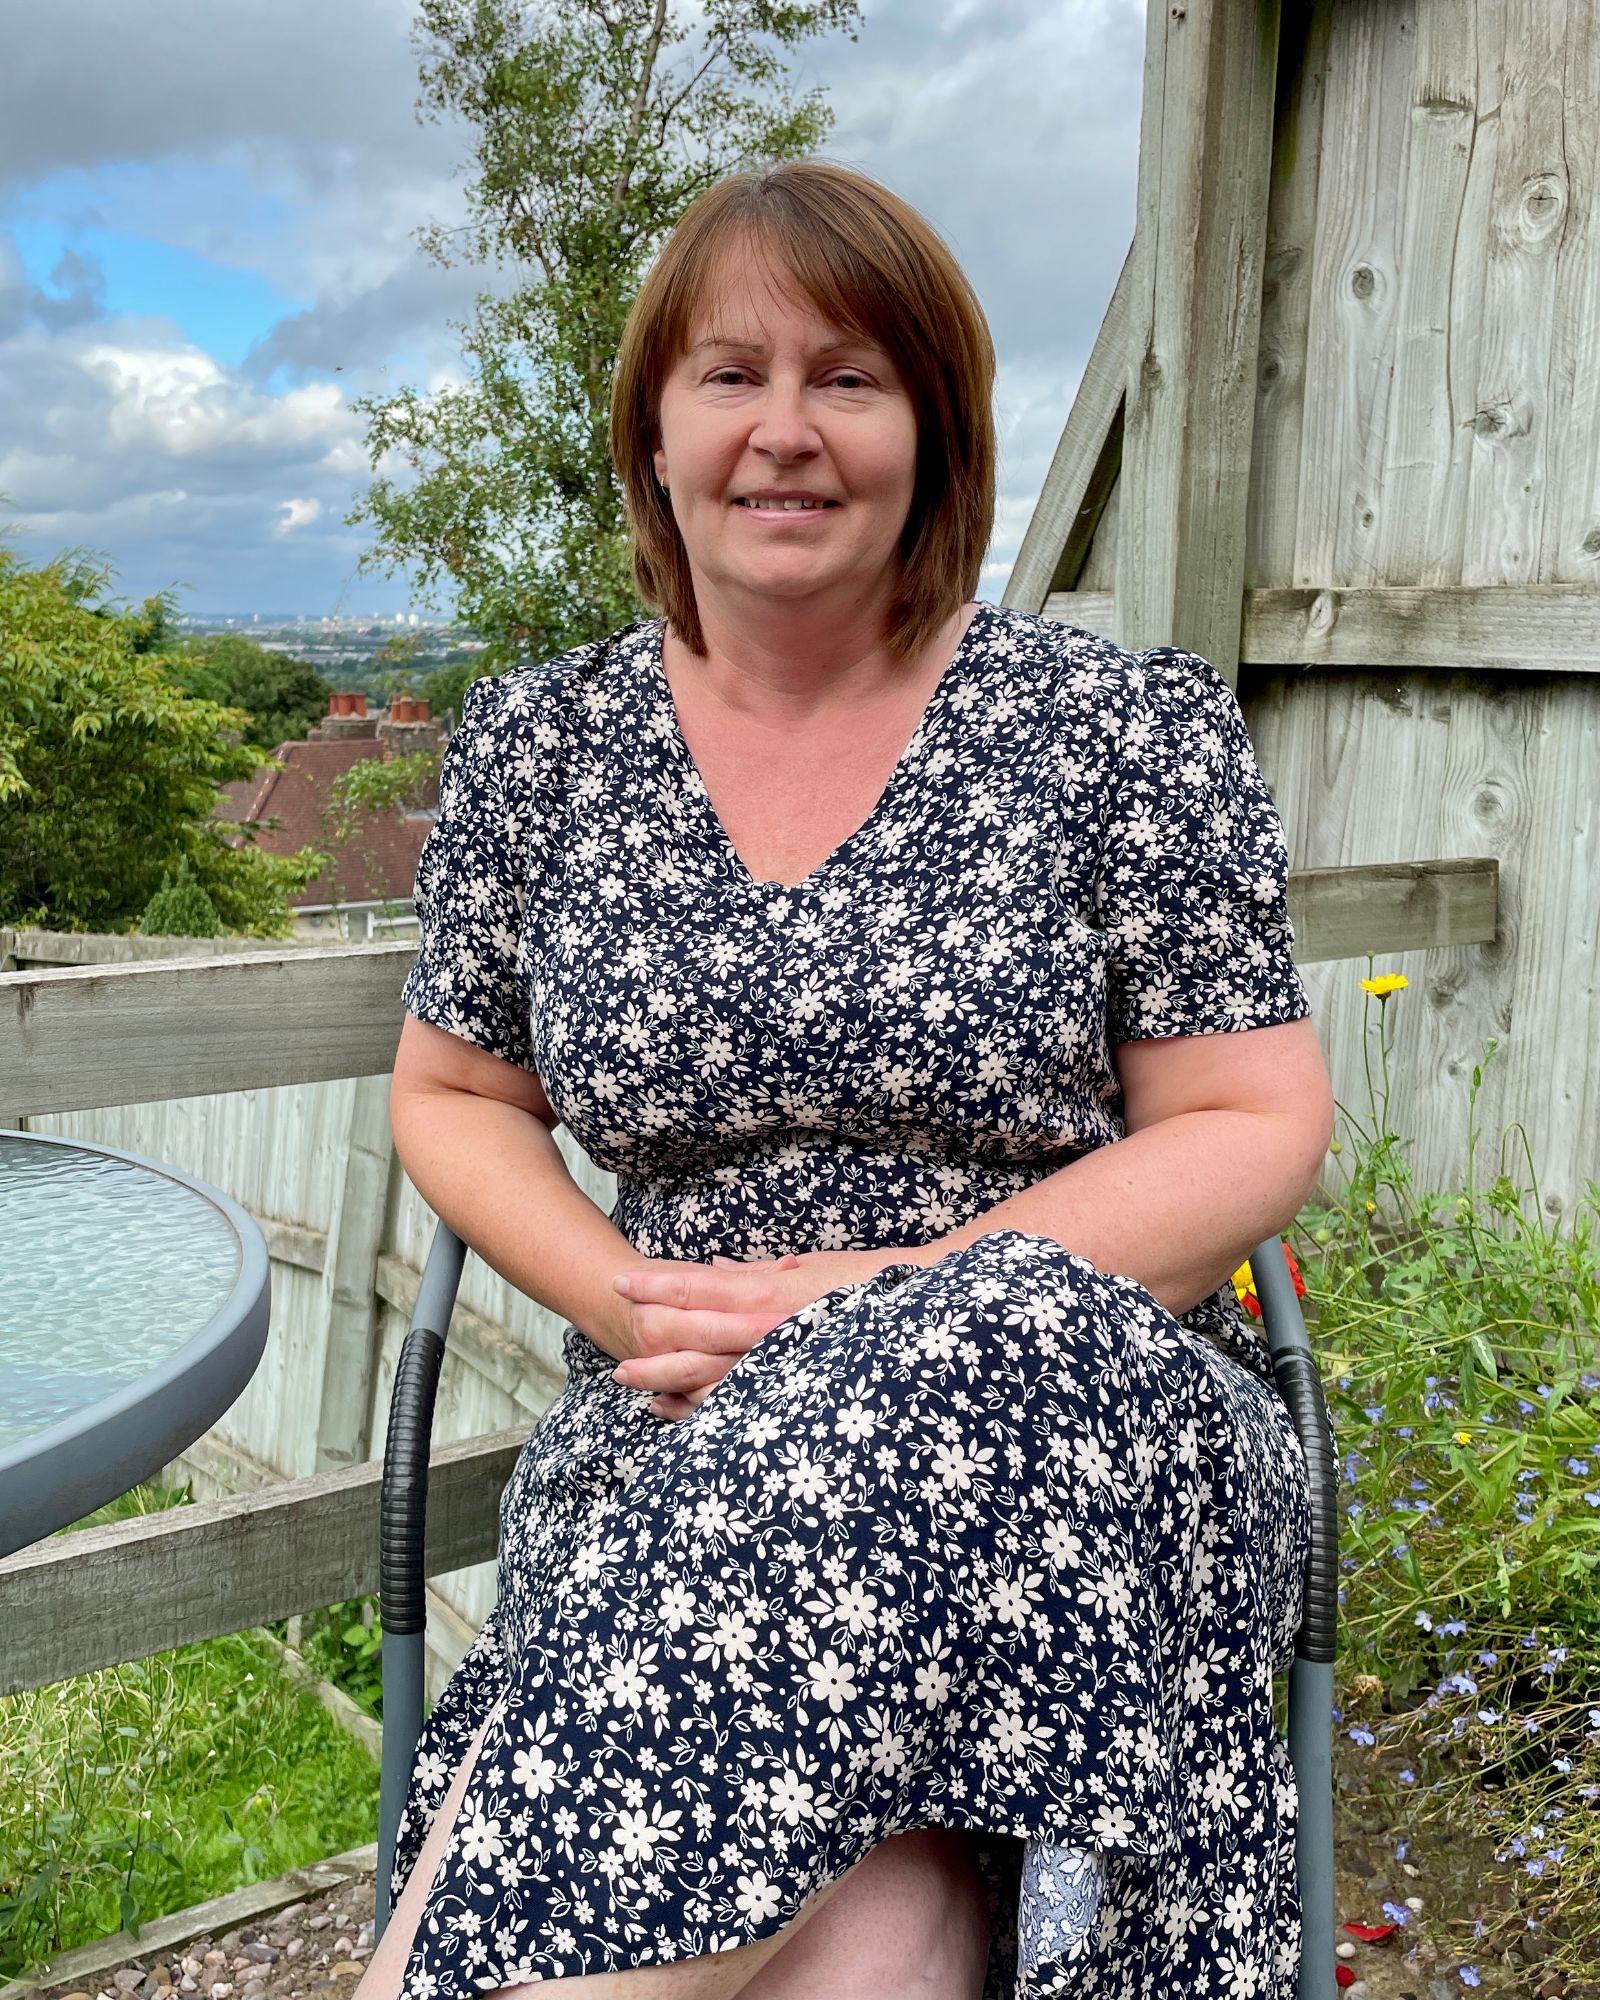 A lady sitting in the garden wearing a navy flowered summer, v neck dress